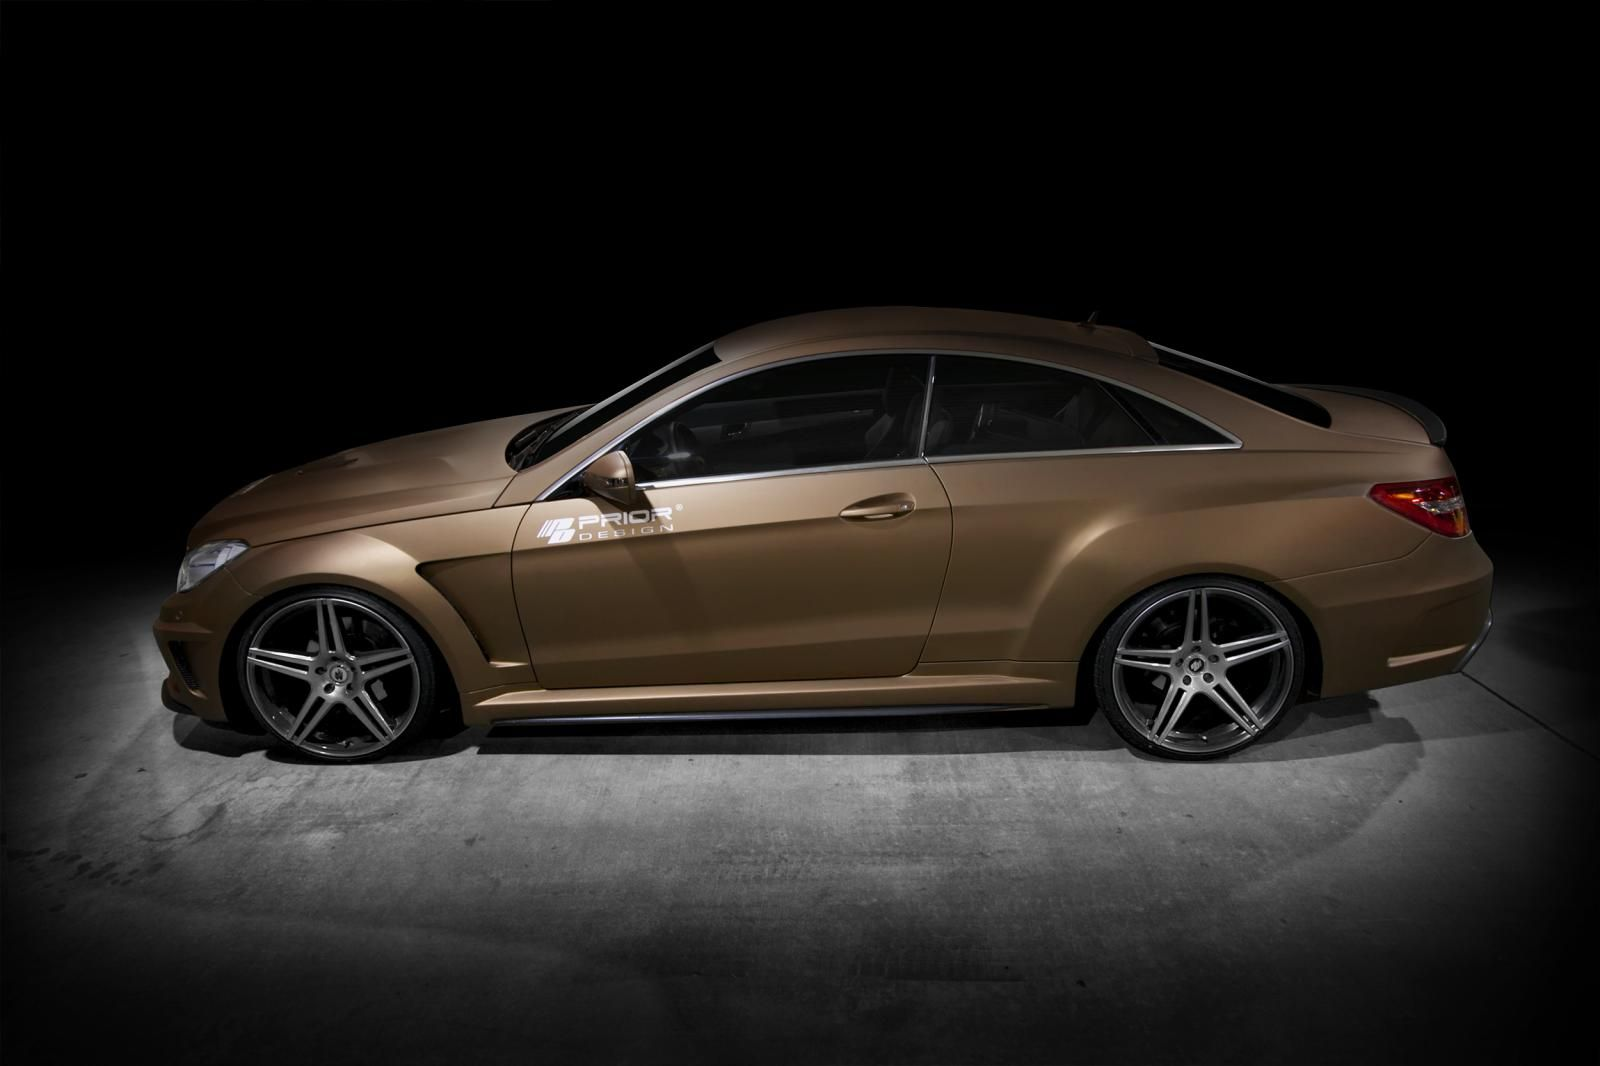 Mercedes benz e class coupe pd850 black edition widebody kit by prior design 06 05